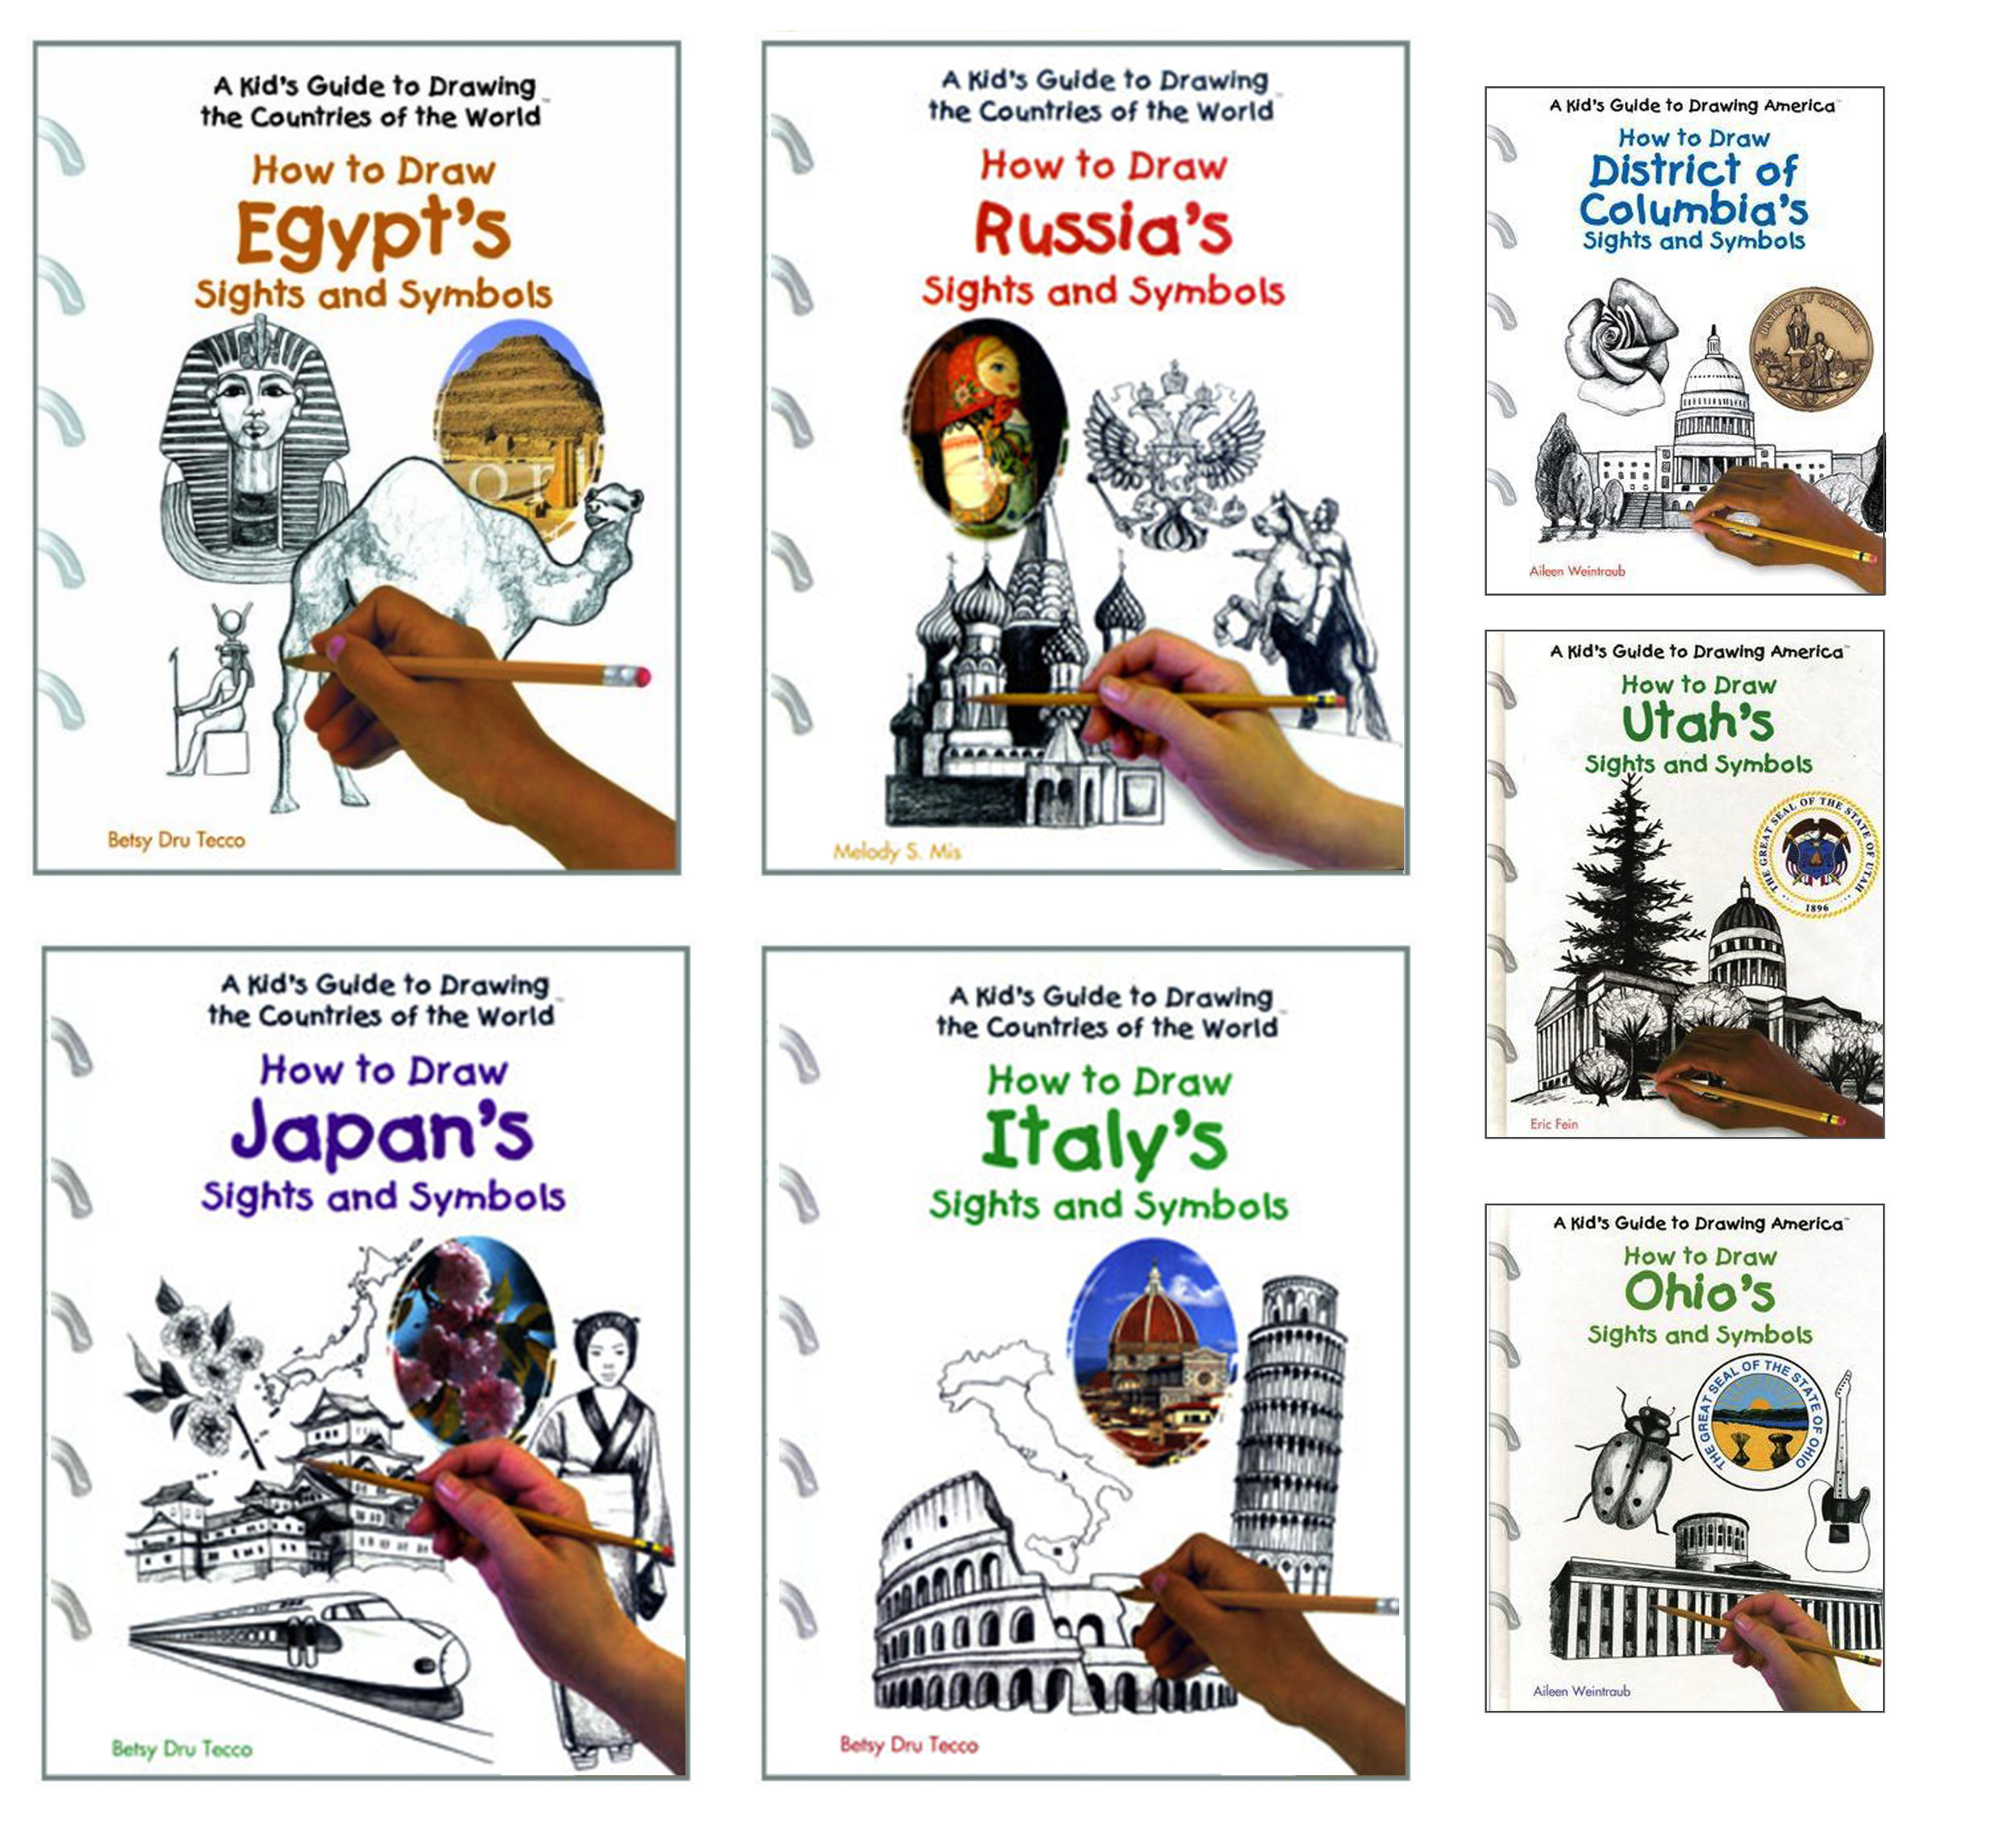 I illustrated this how-to-draw series that doubled as a lesson in geography and cultural history. I created over 200 illustrations, broken down into easy-to-follow steps.